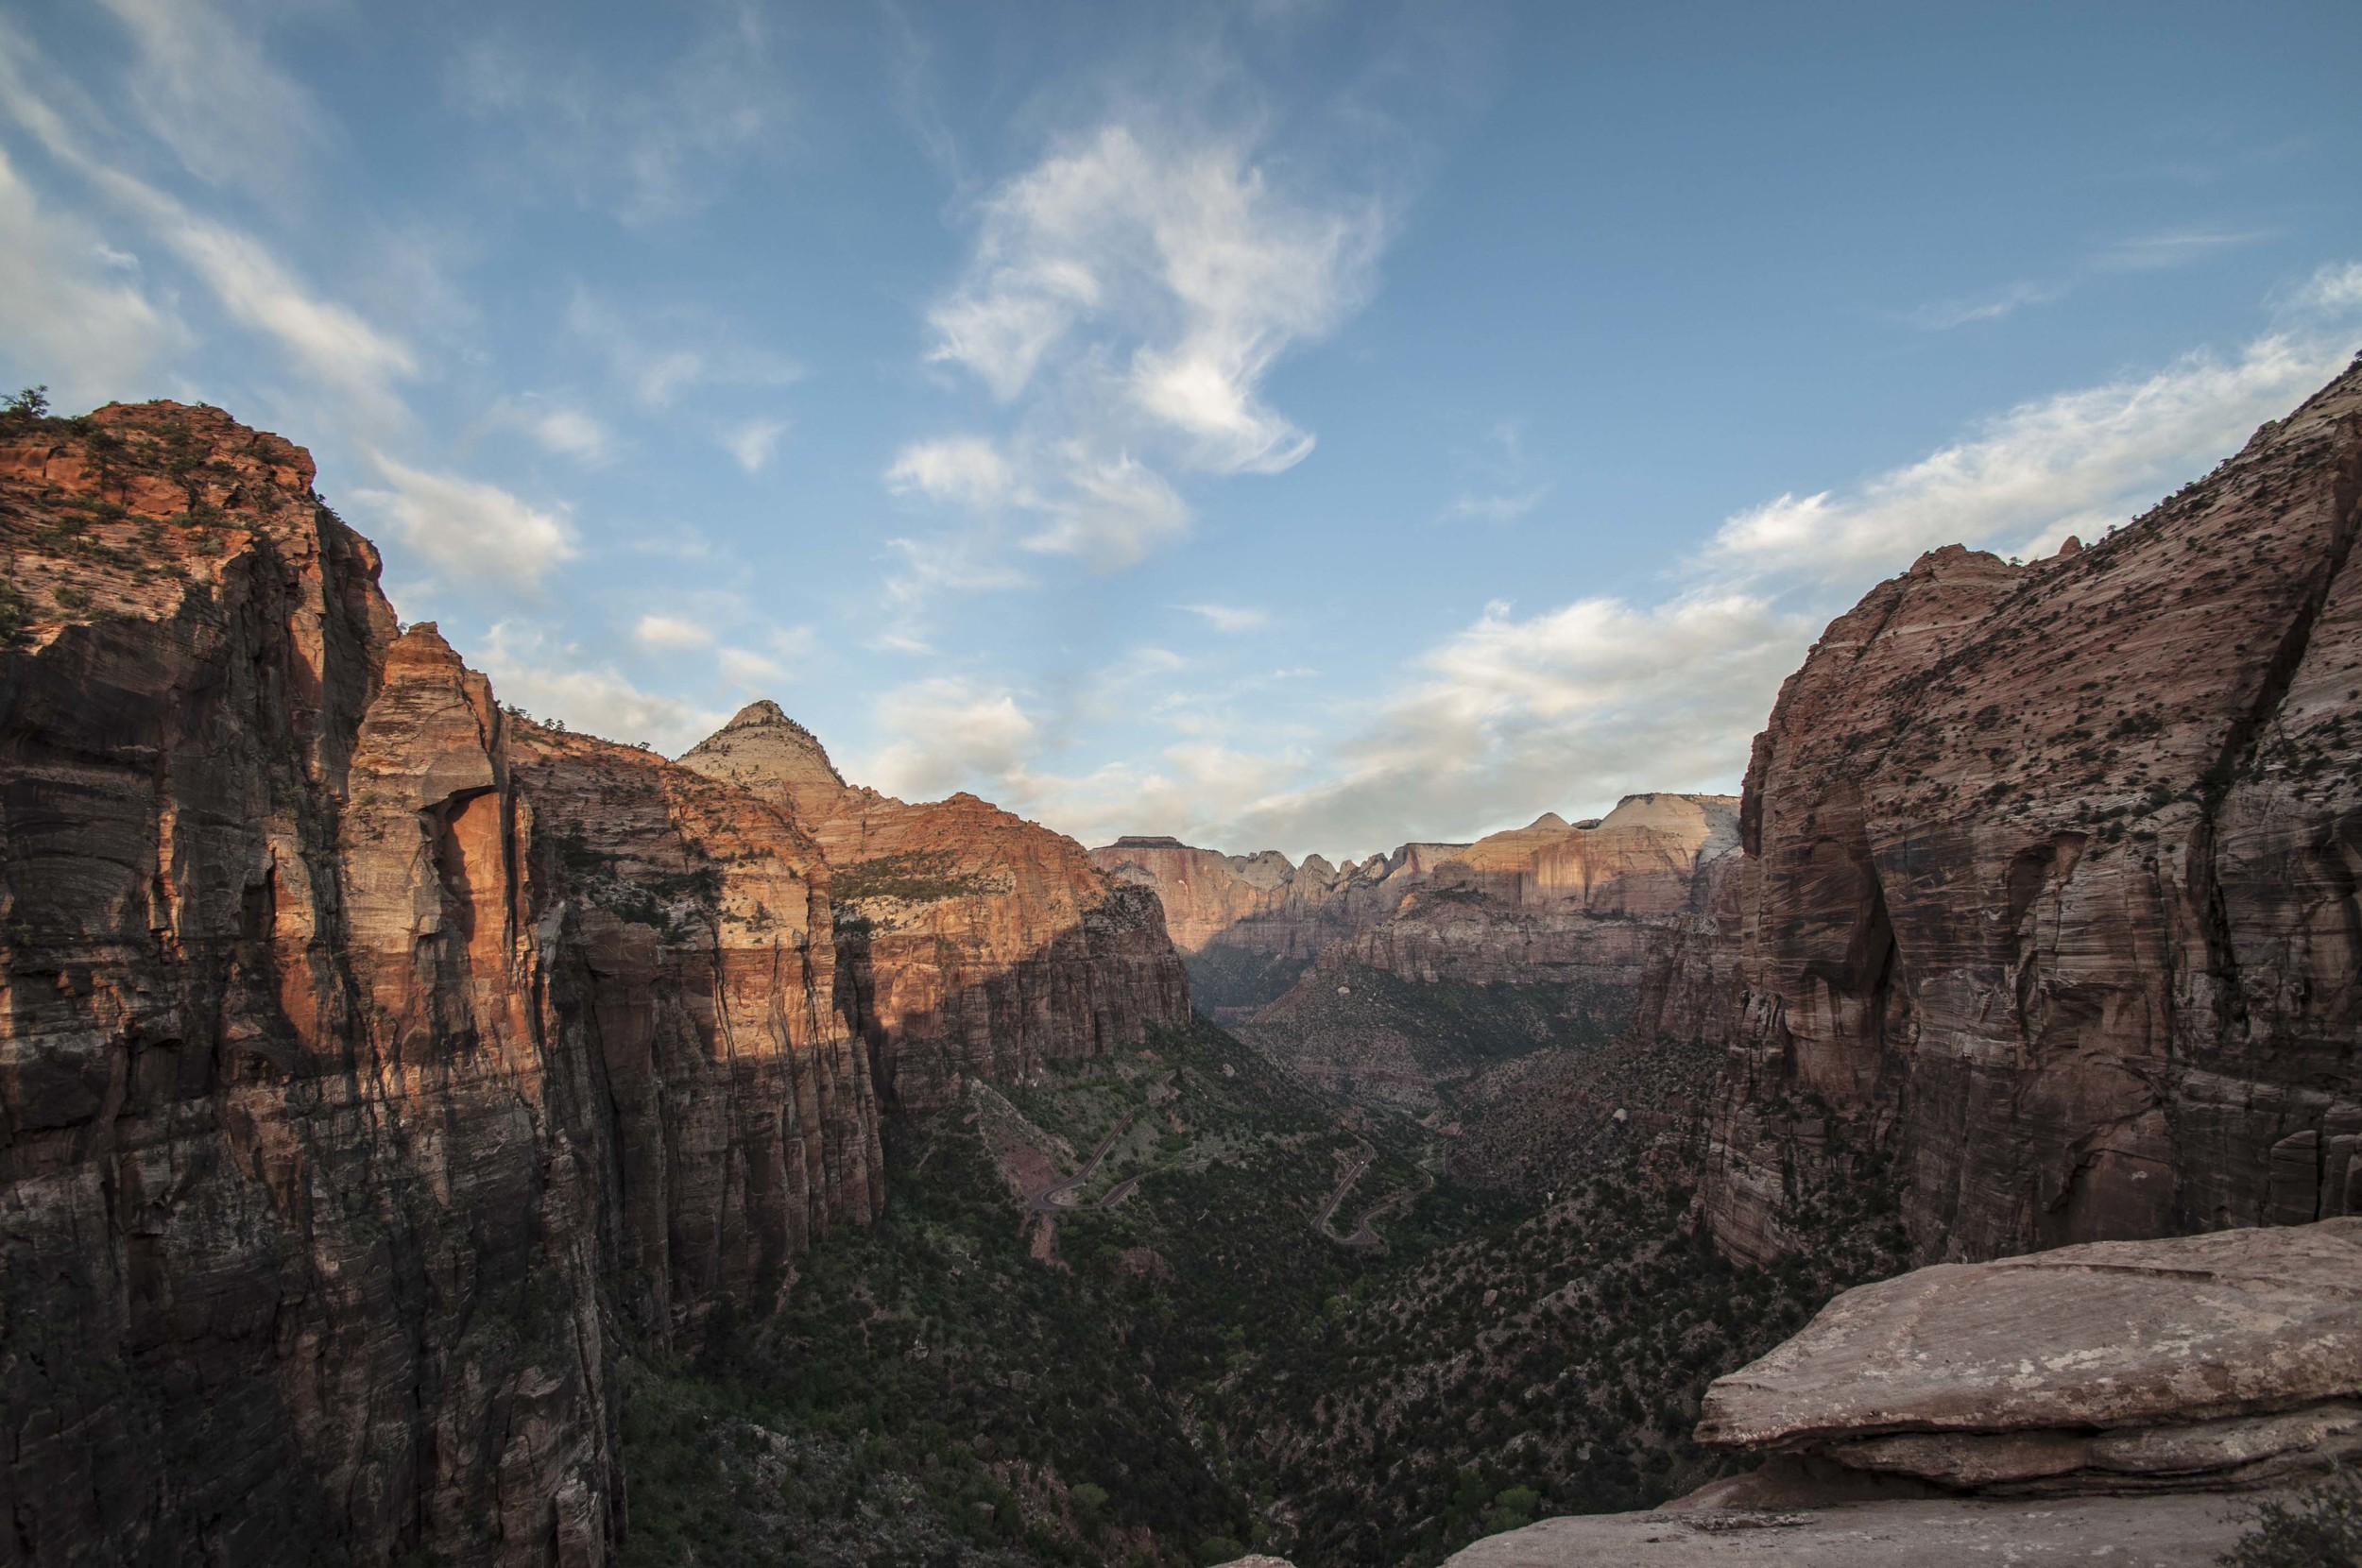 Zion Canyon at sunrise. Photo by Stefan Moser, post-processed by Christine Moser.